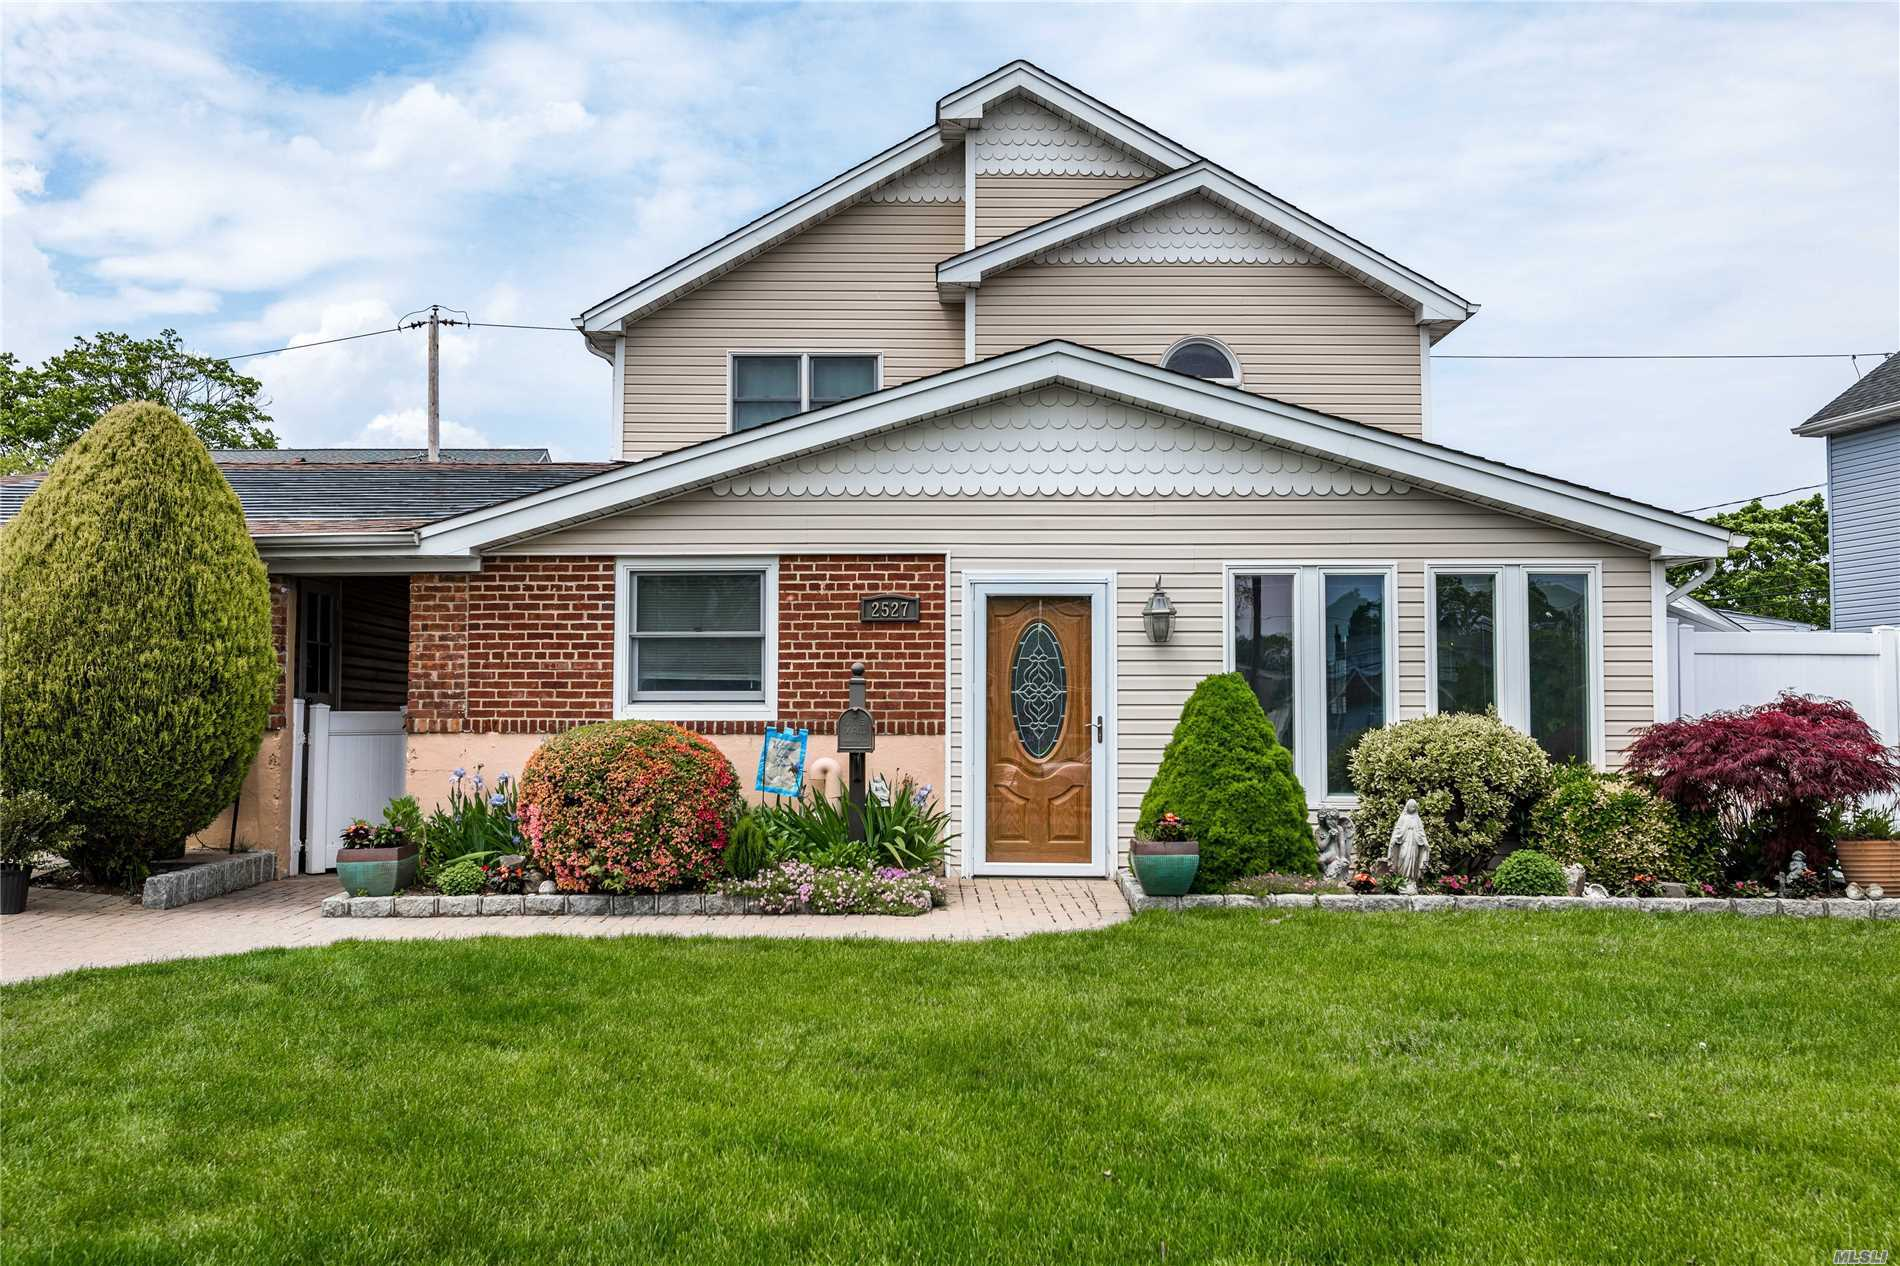 2527 Cypress Ave - East Meadow, New York